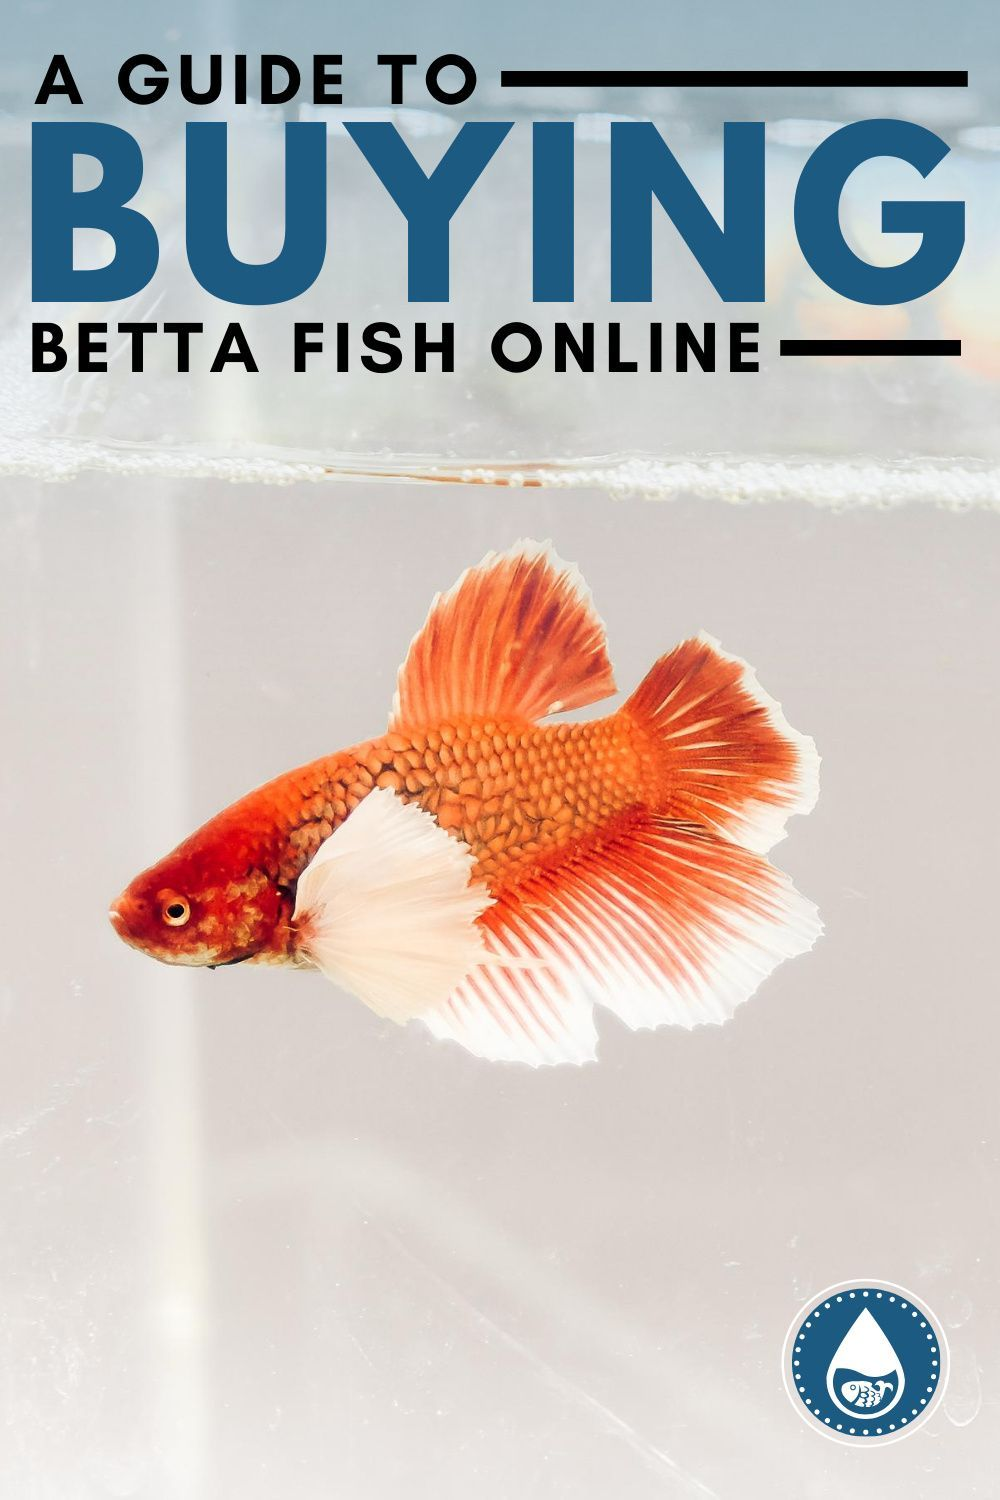 A Guide To Buying Betta Fish Online In 2020 Betta Fish Betta Fish